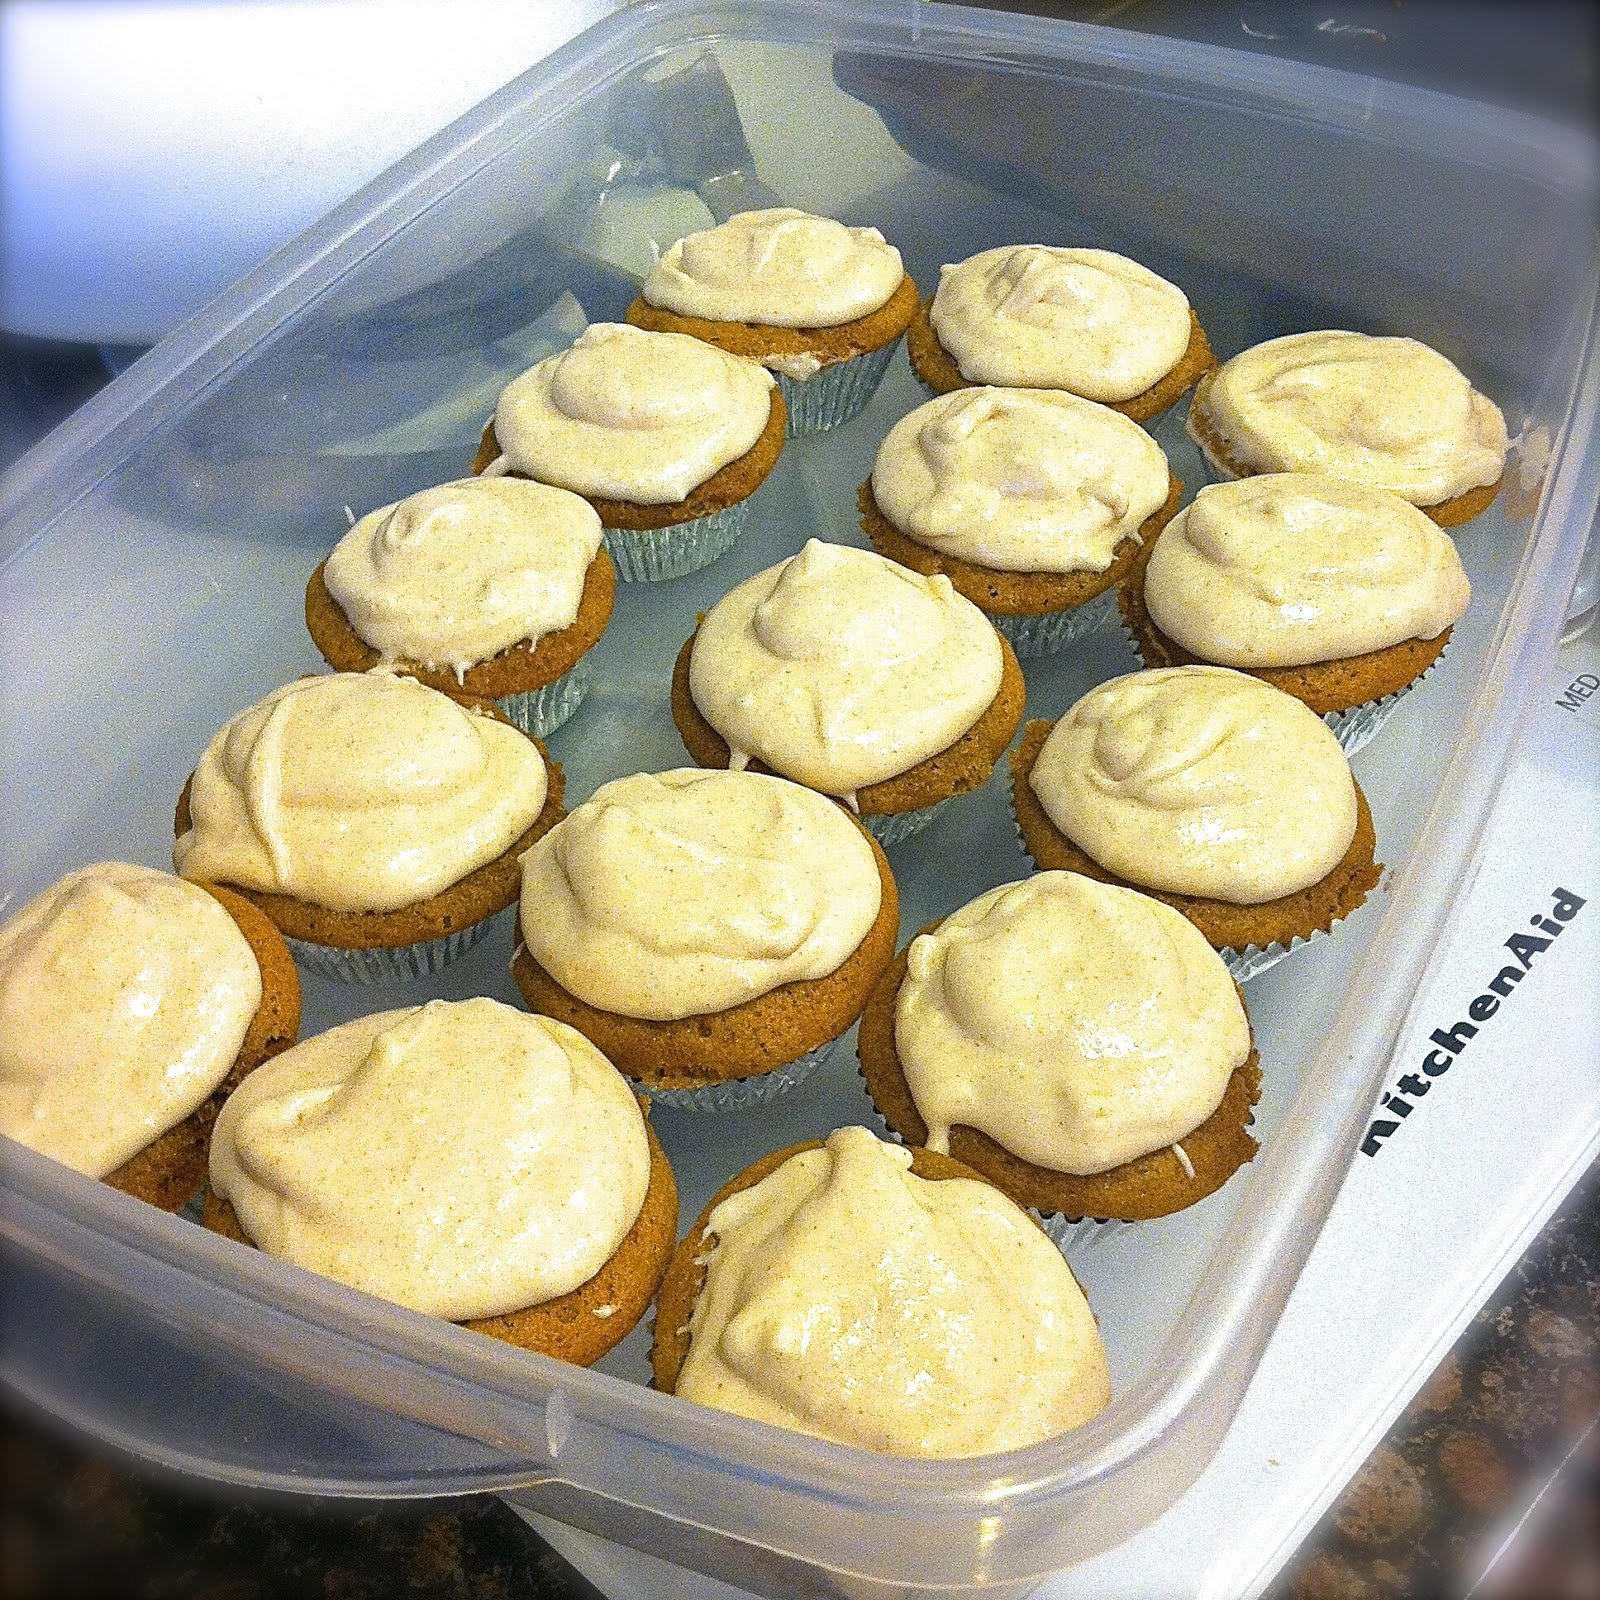 ... : Carrot Cake Cupcakes with Cinnamon Cream Cheese Frosting